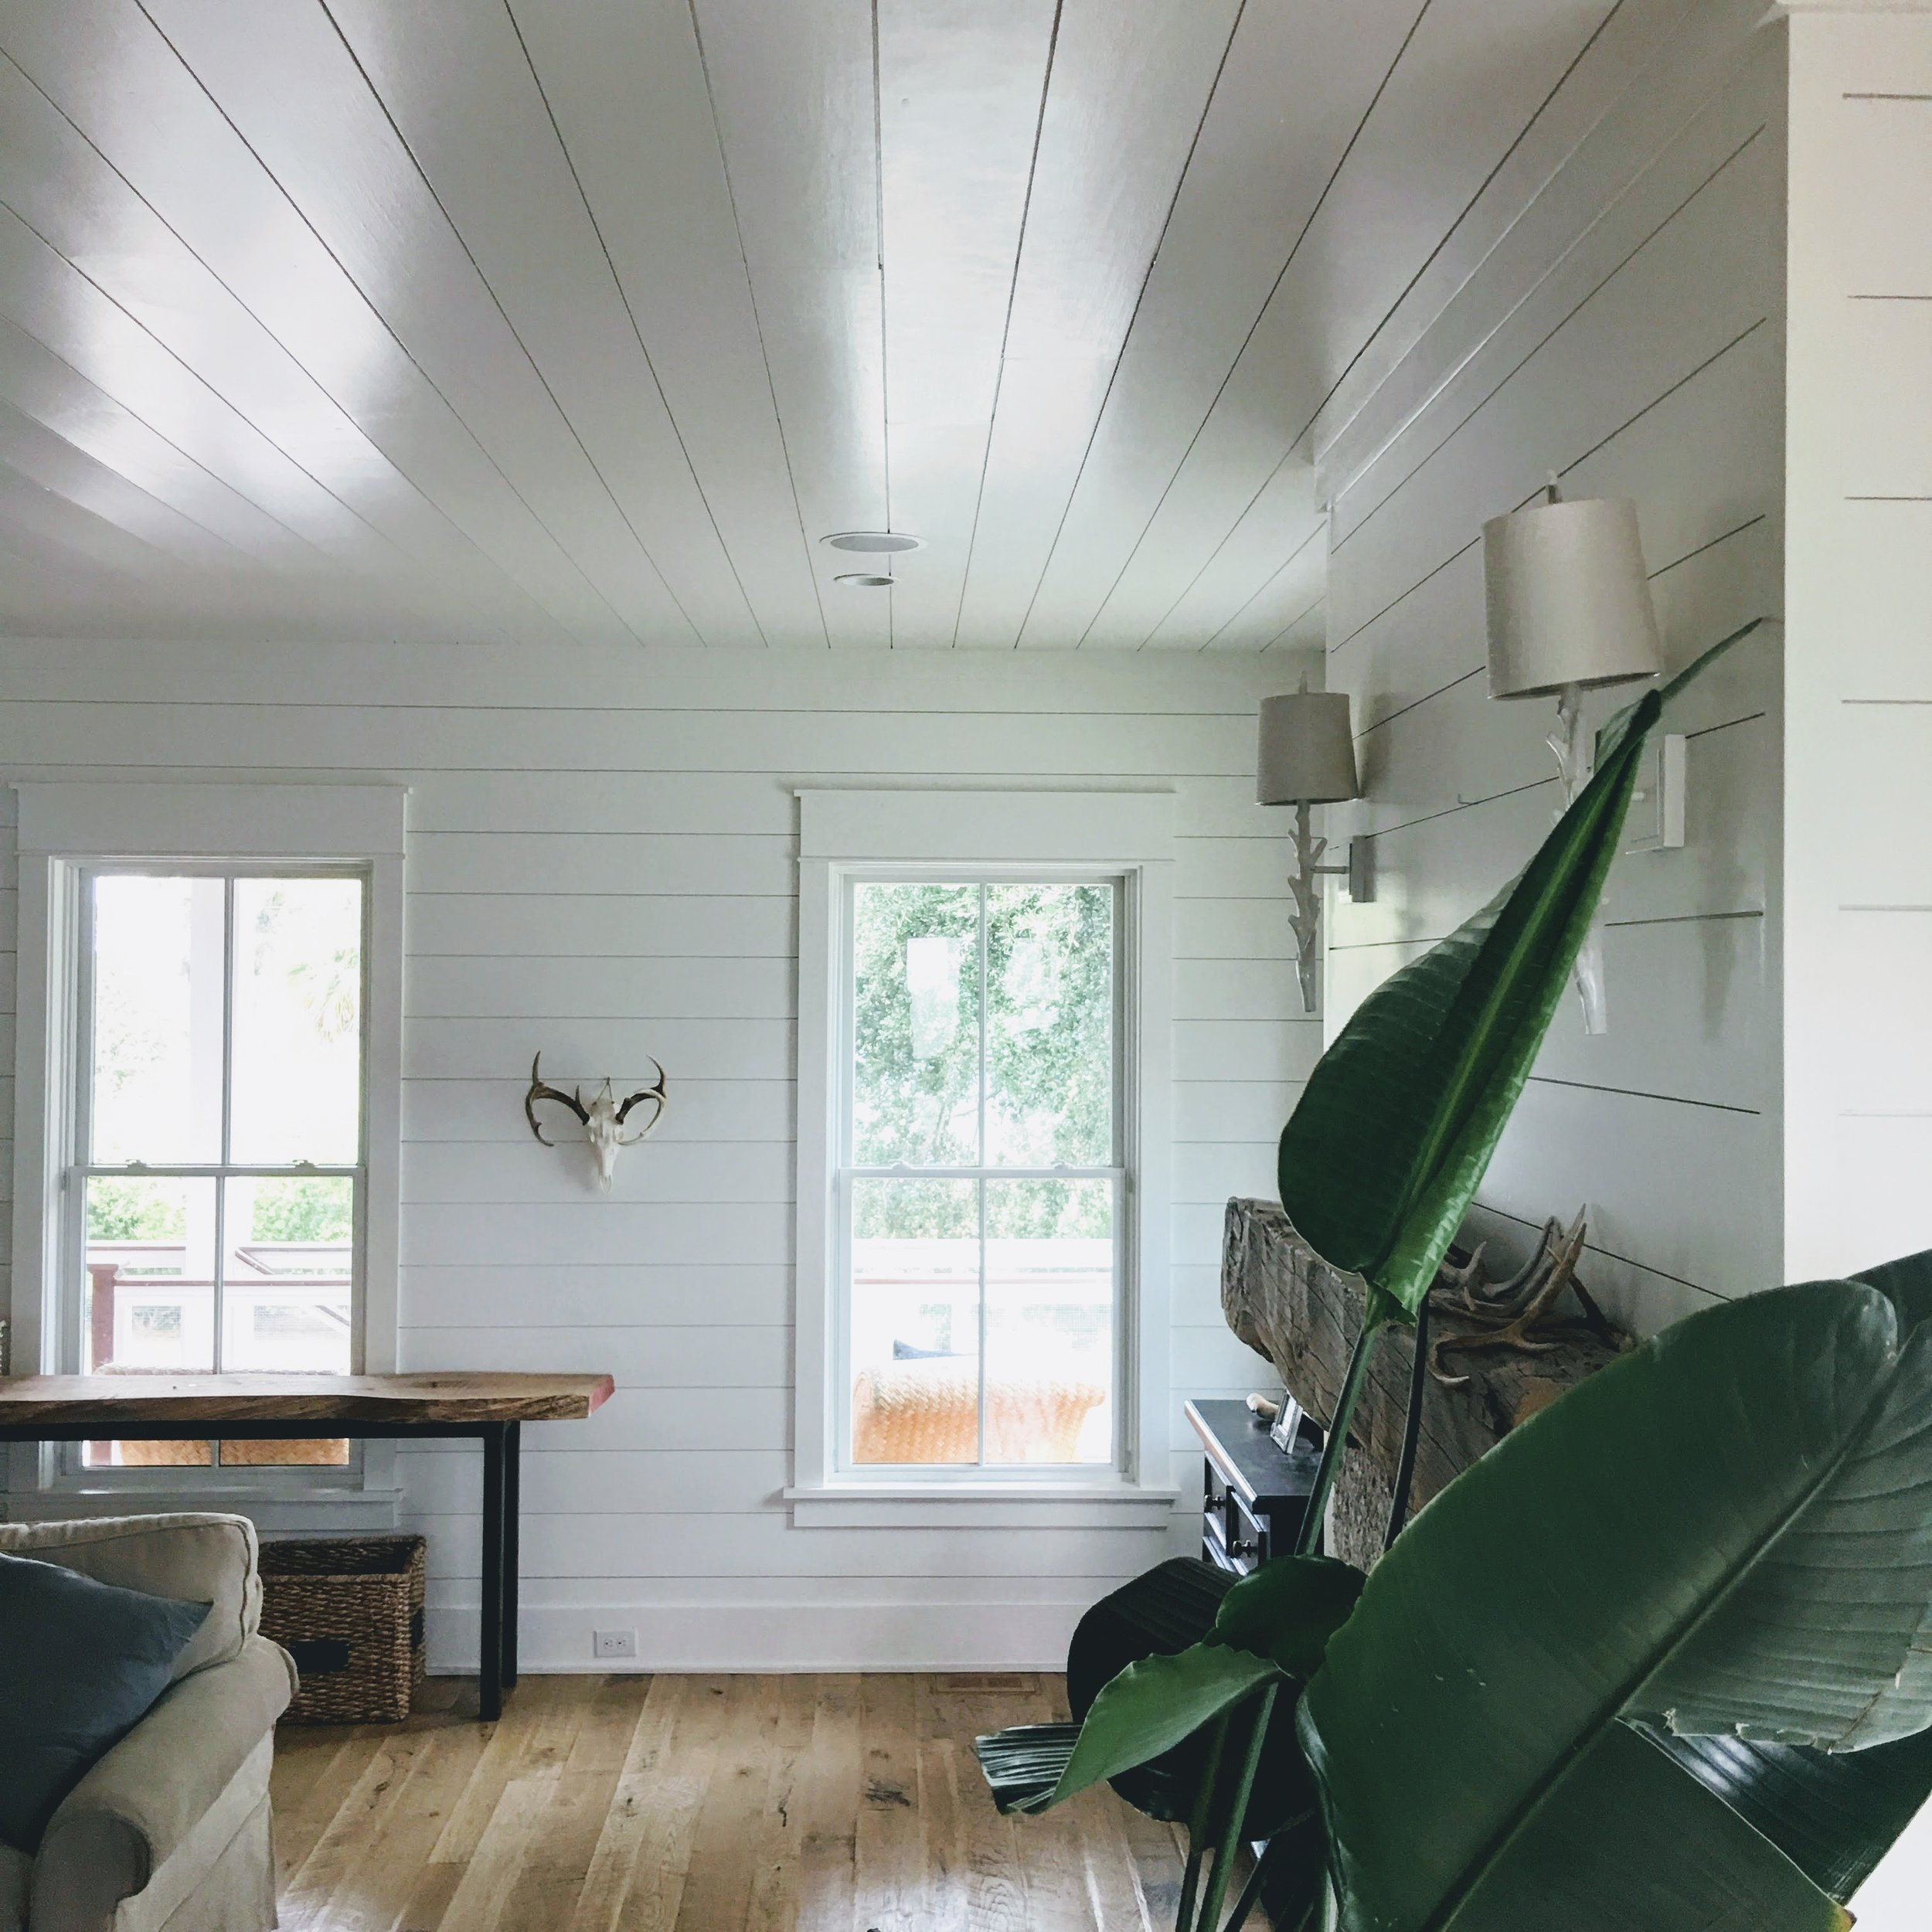 SHIPLAPelliottceiling&wall.JPG